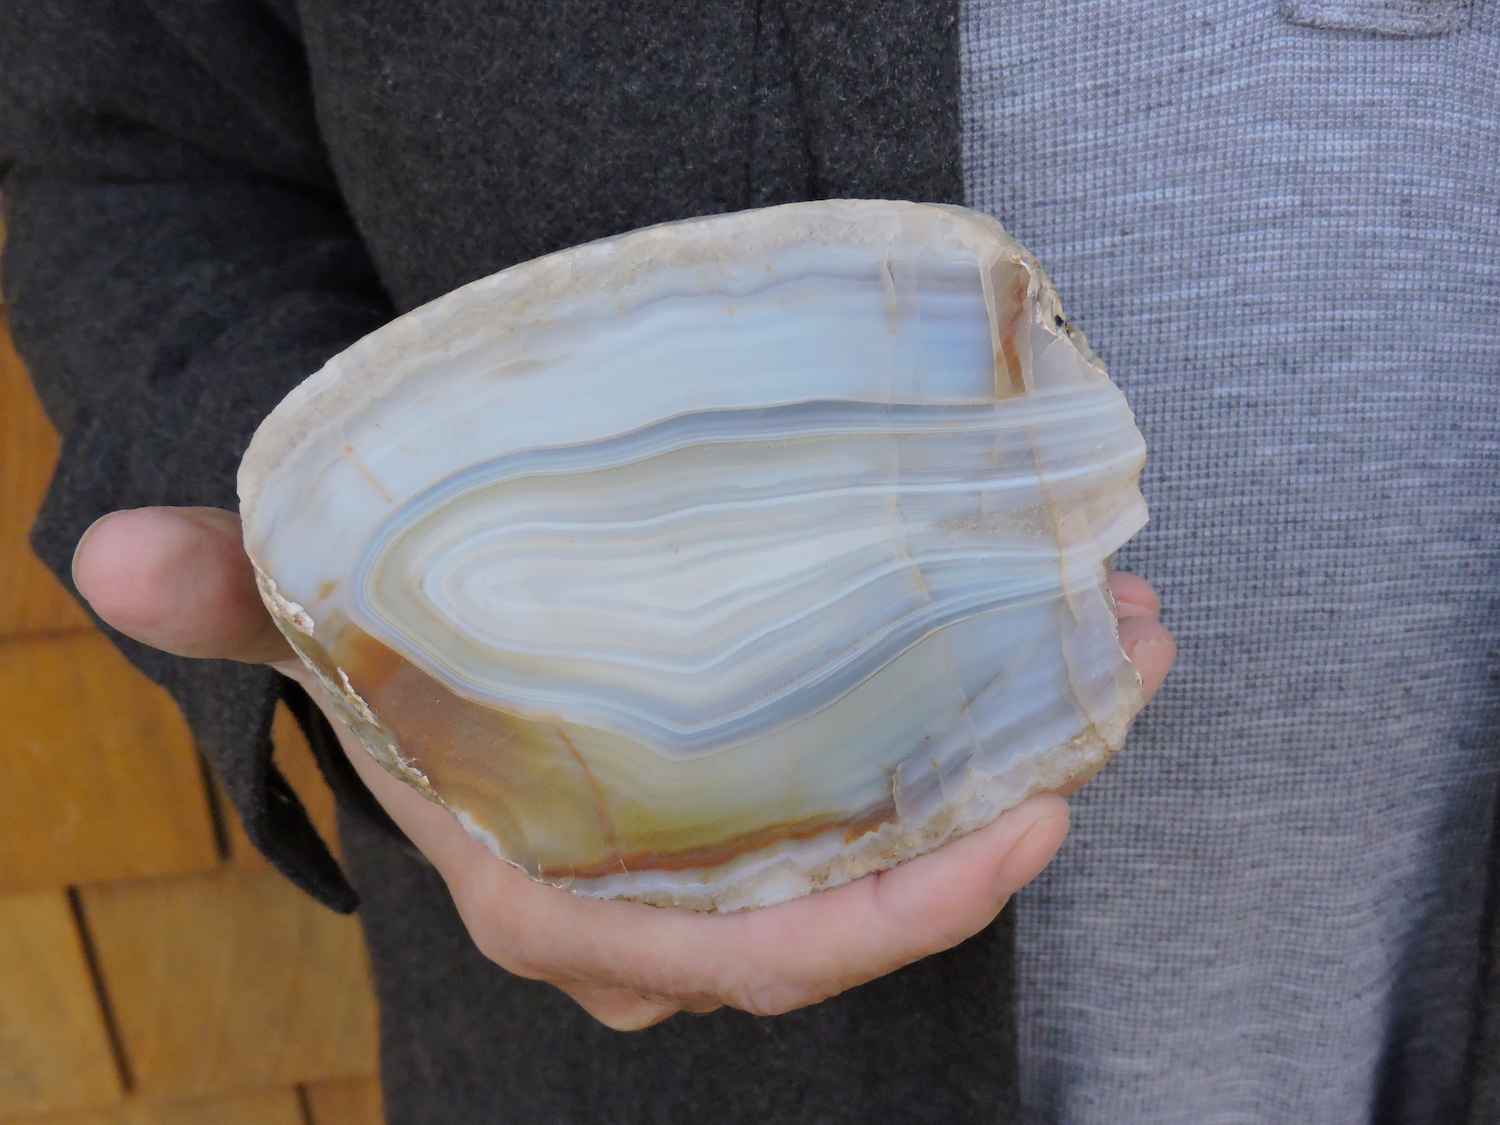 A blue and yellow fortification agate from Dutes' private collection. Dutes hopes to house his collection in a local museum or educational institution on the islands.